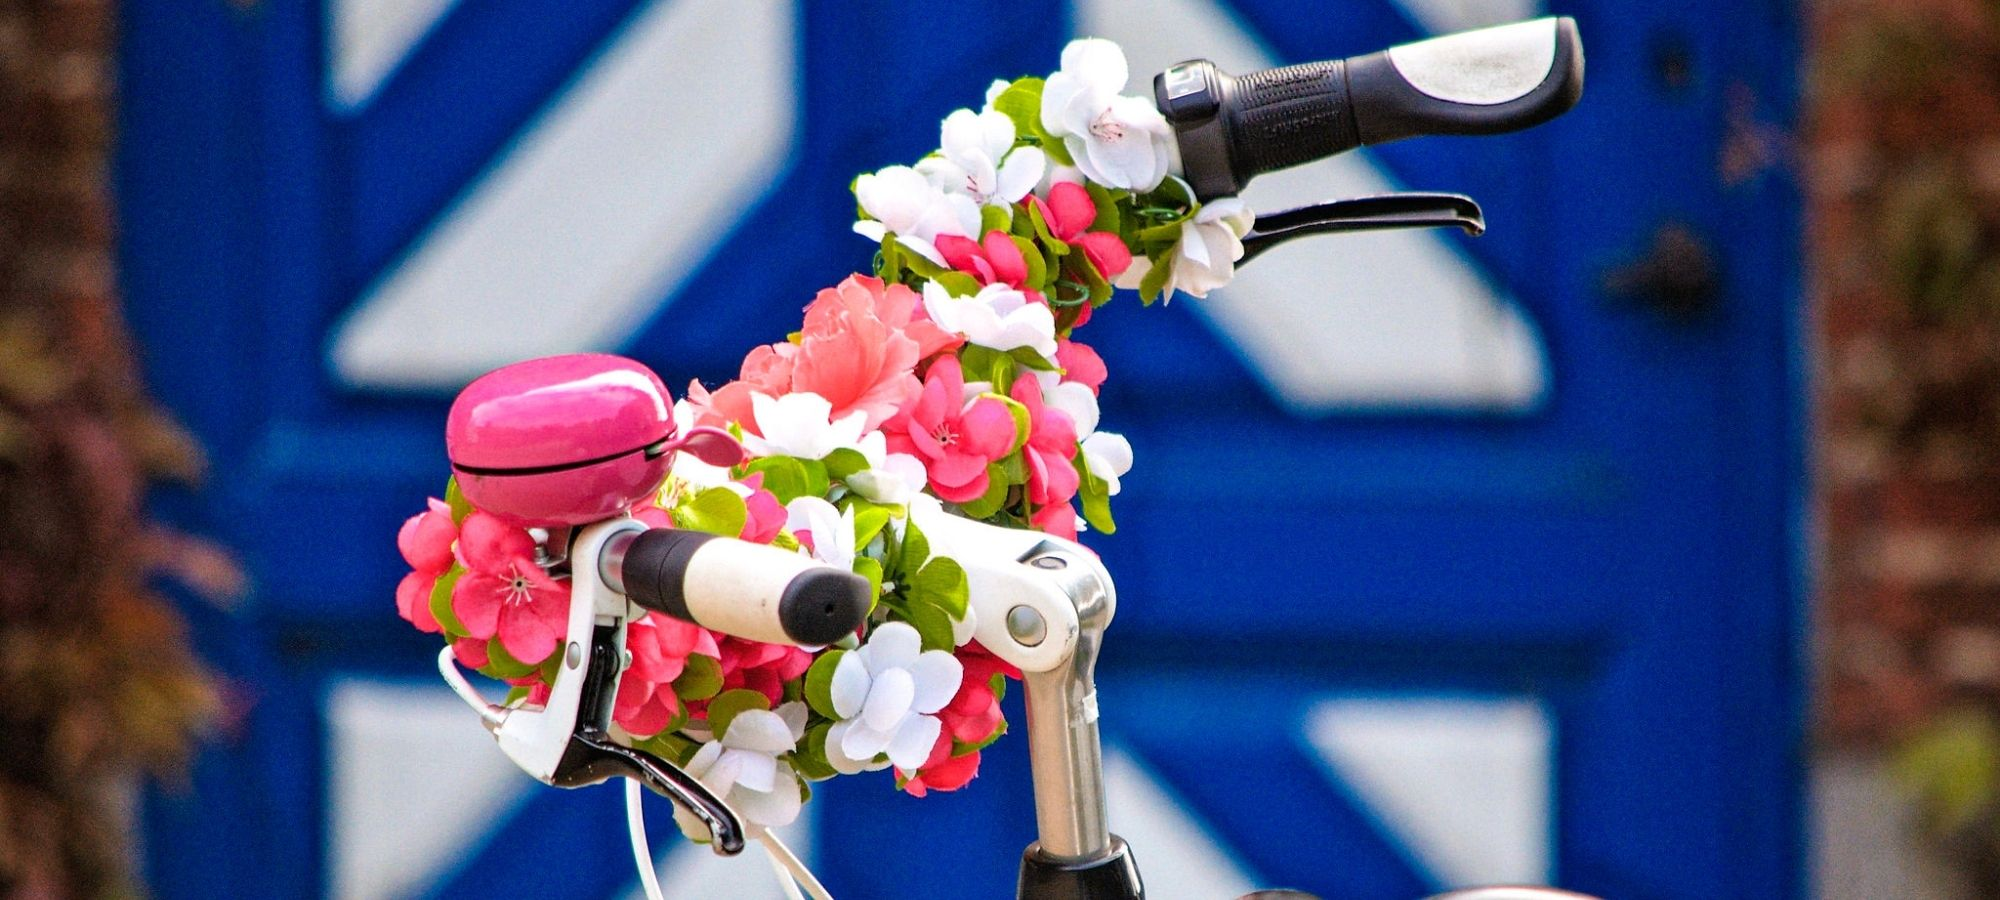 Bike with decorative flowers arranged on the handles. Bike is parked by the entrance gate to Domaine Tivoli, Mechelen